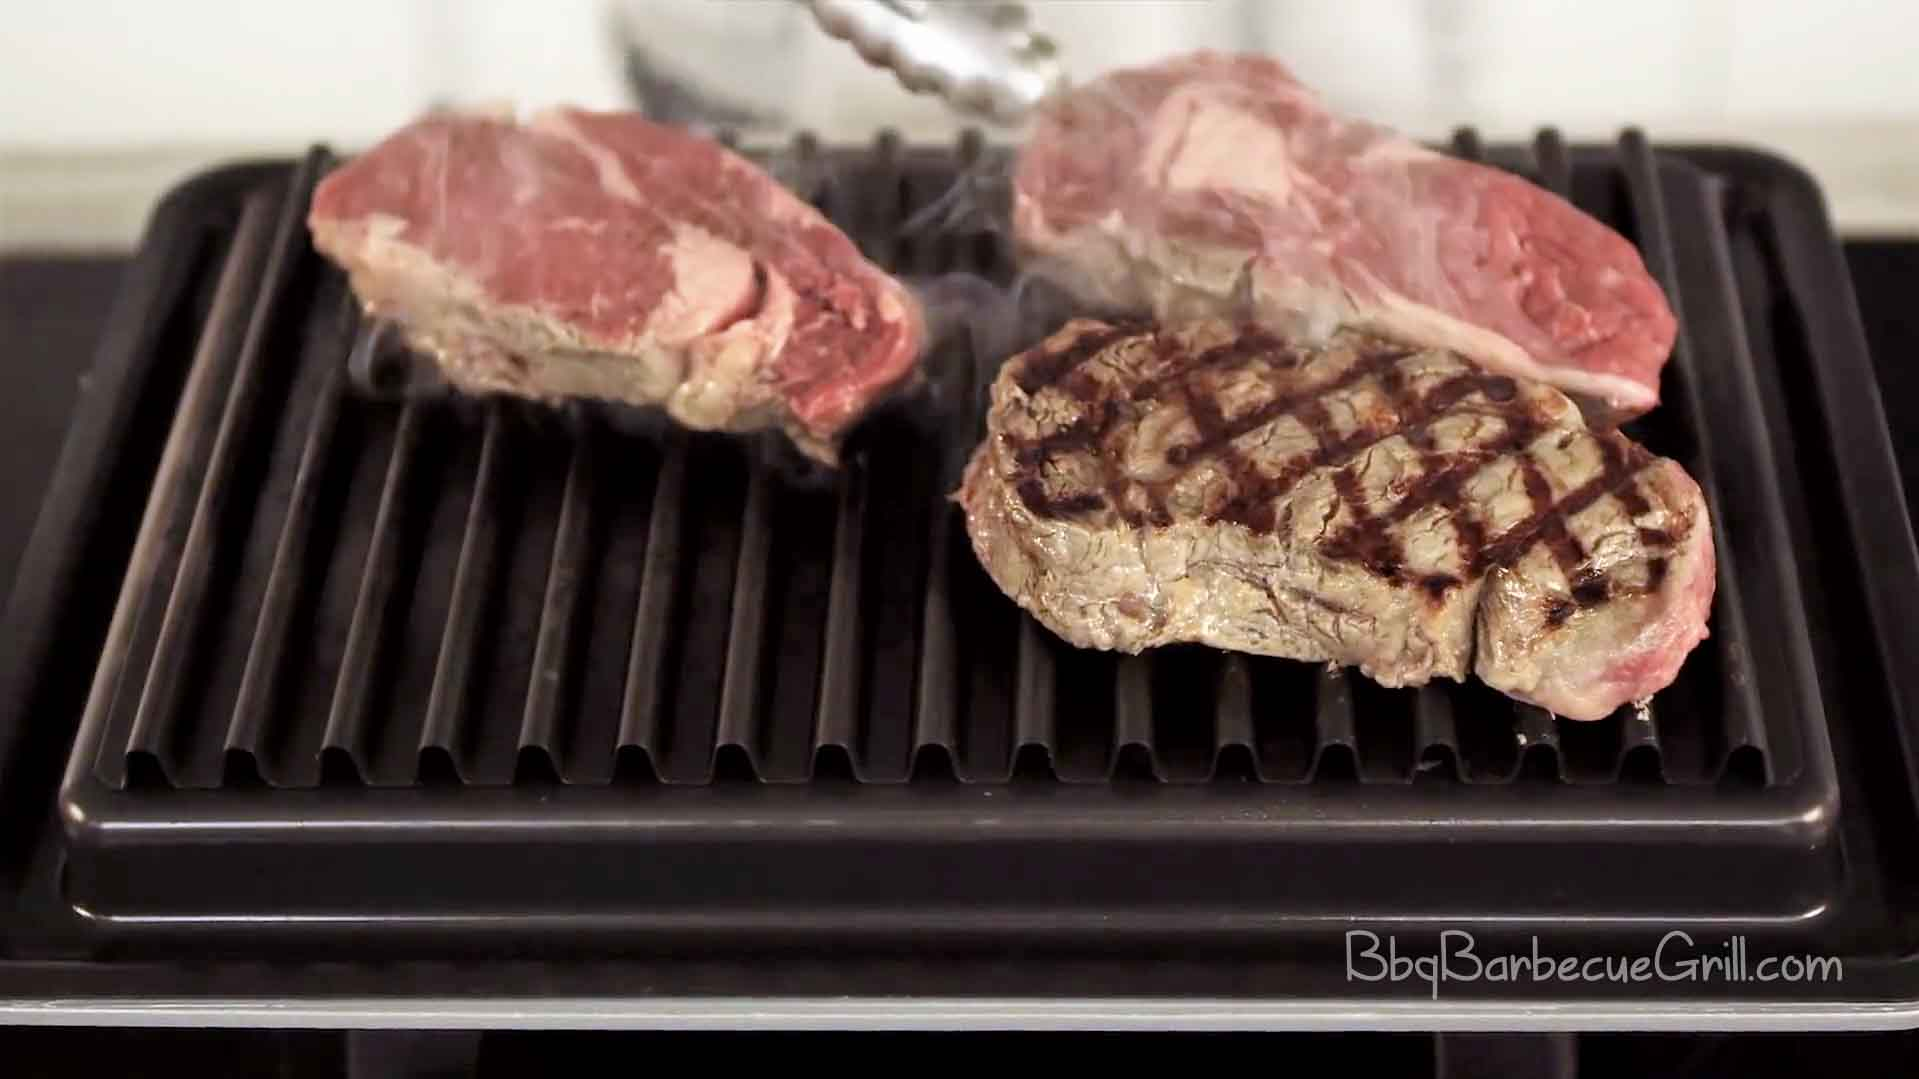 Best Electric Bbq Grill ~ What the best electric grill for my steak in bbq